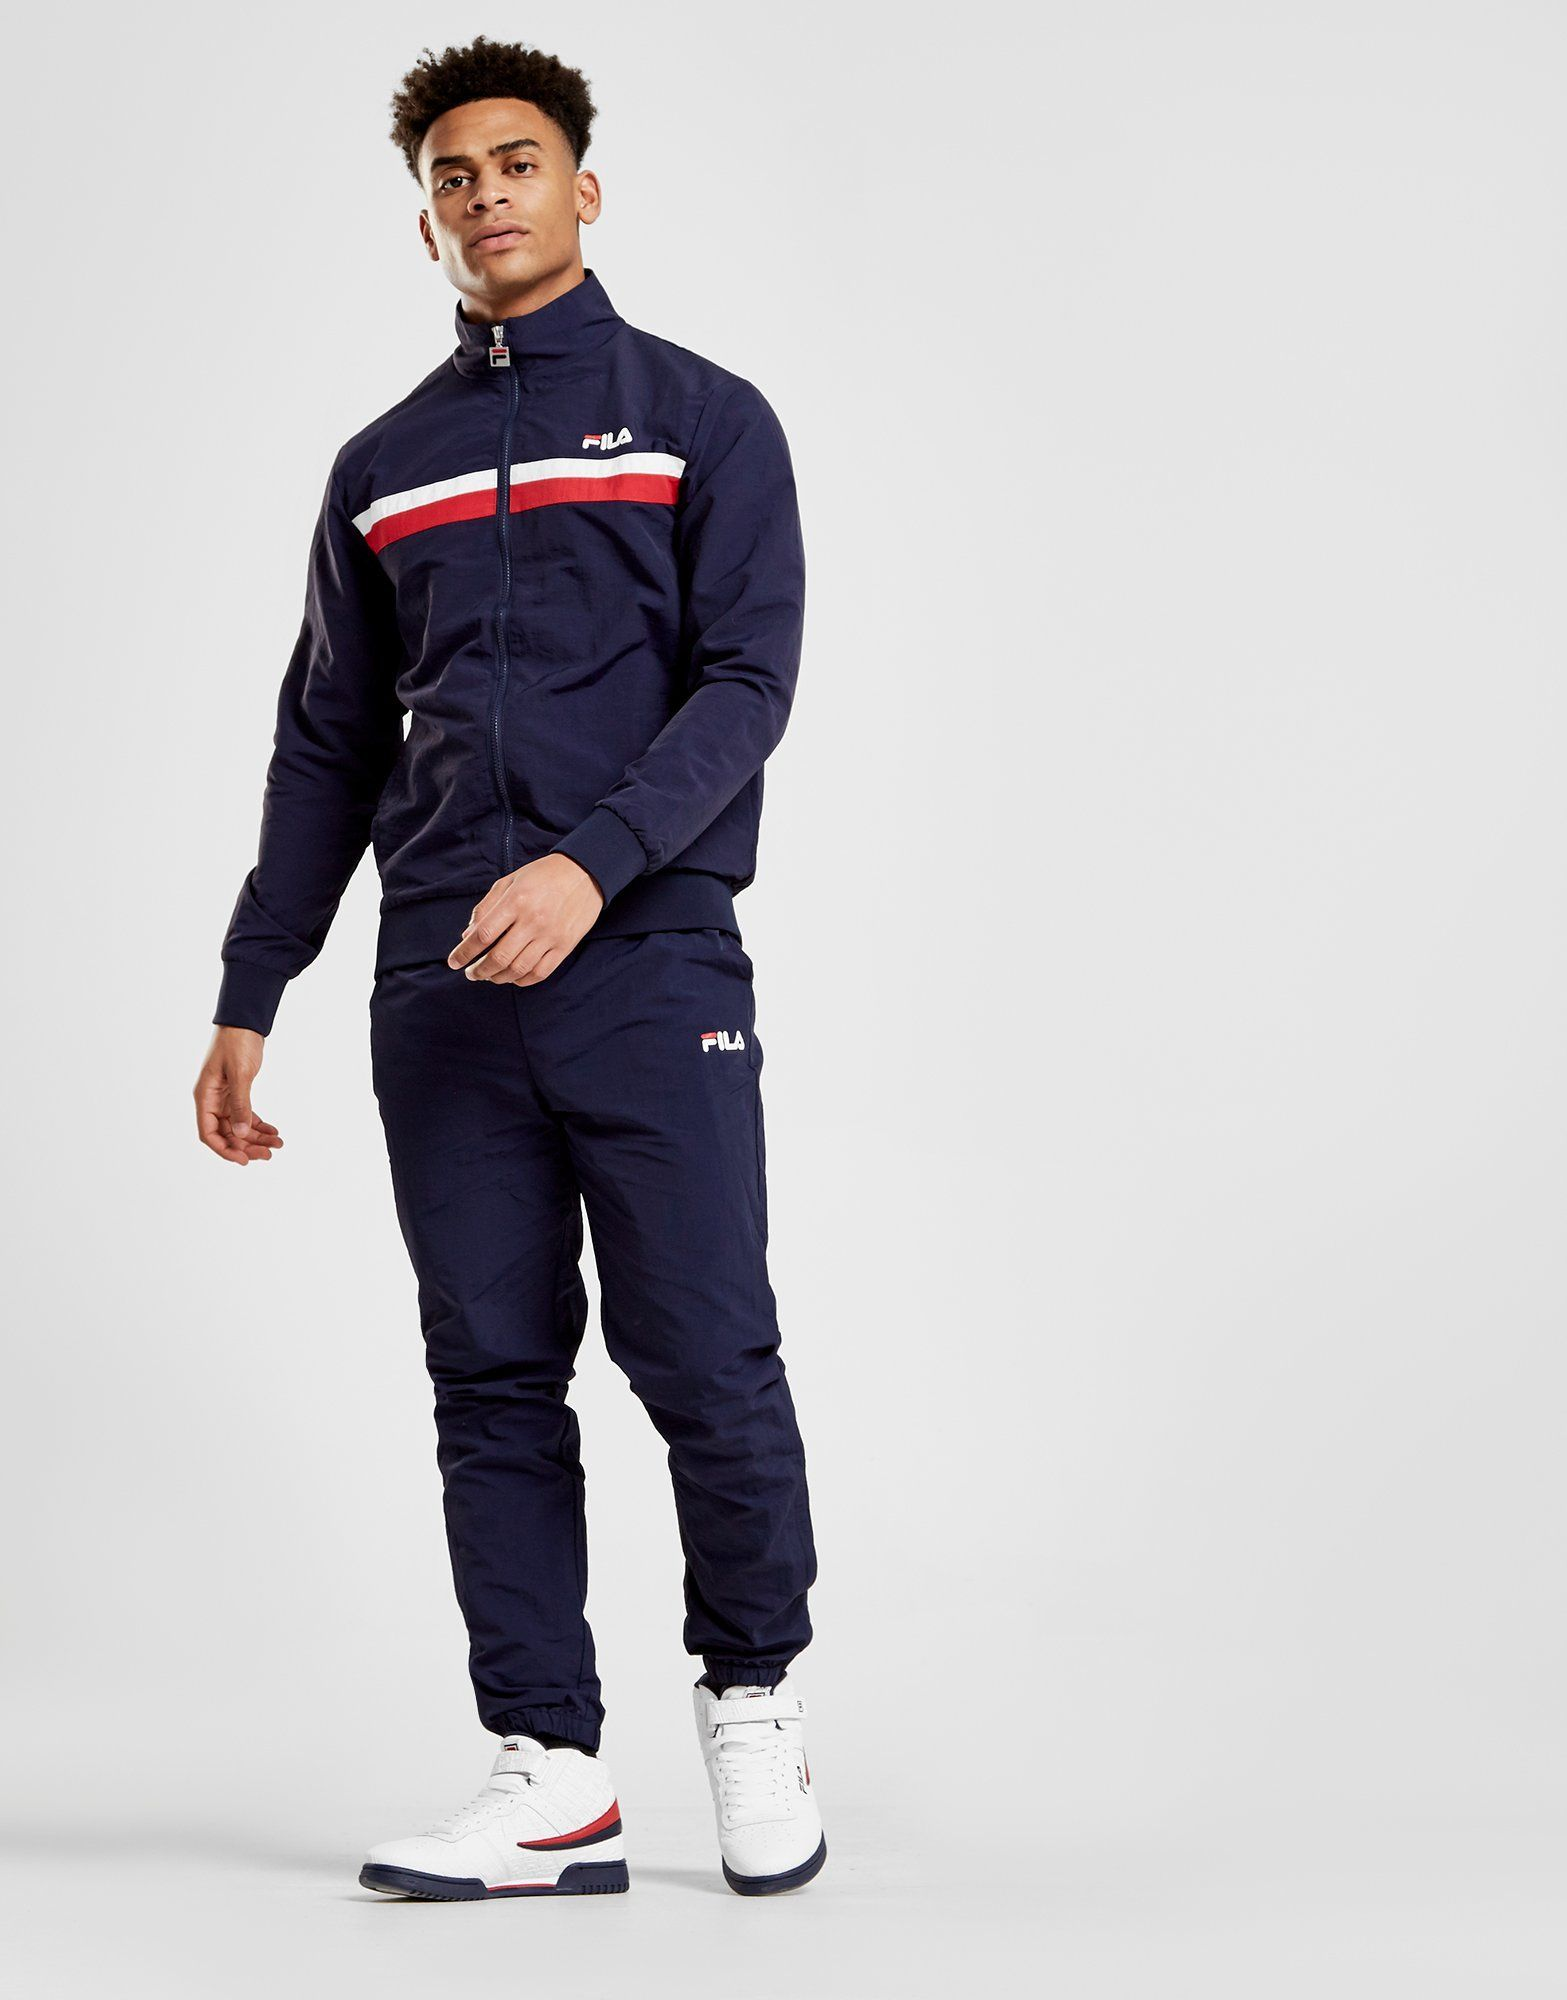 Fila Woven Tracksuit with JD Sports